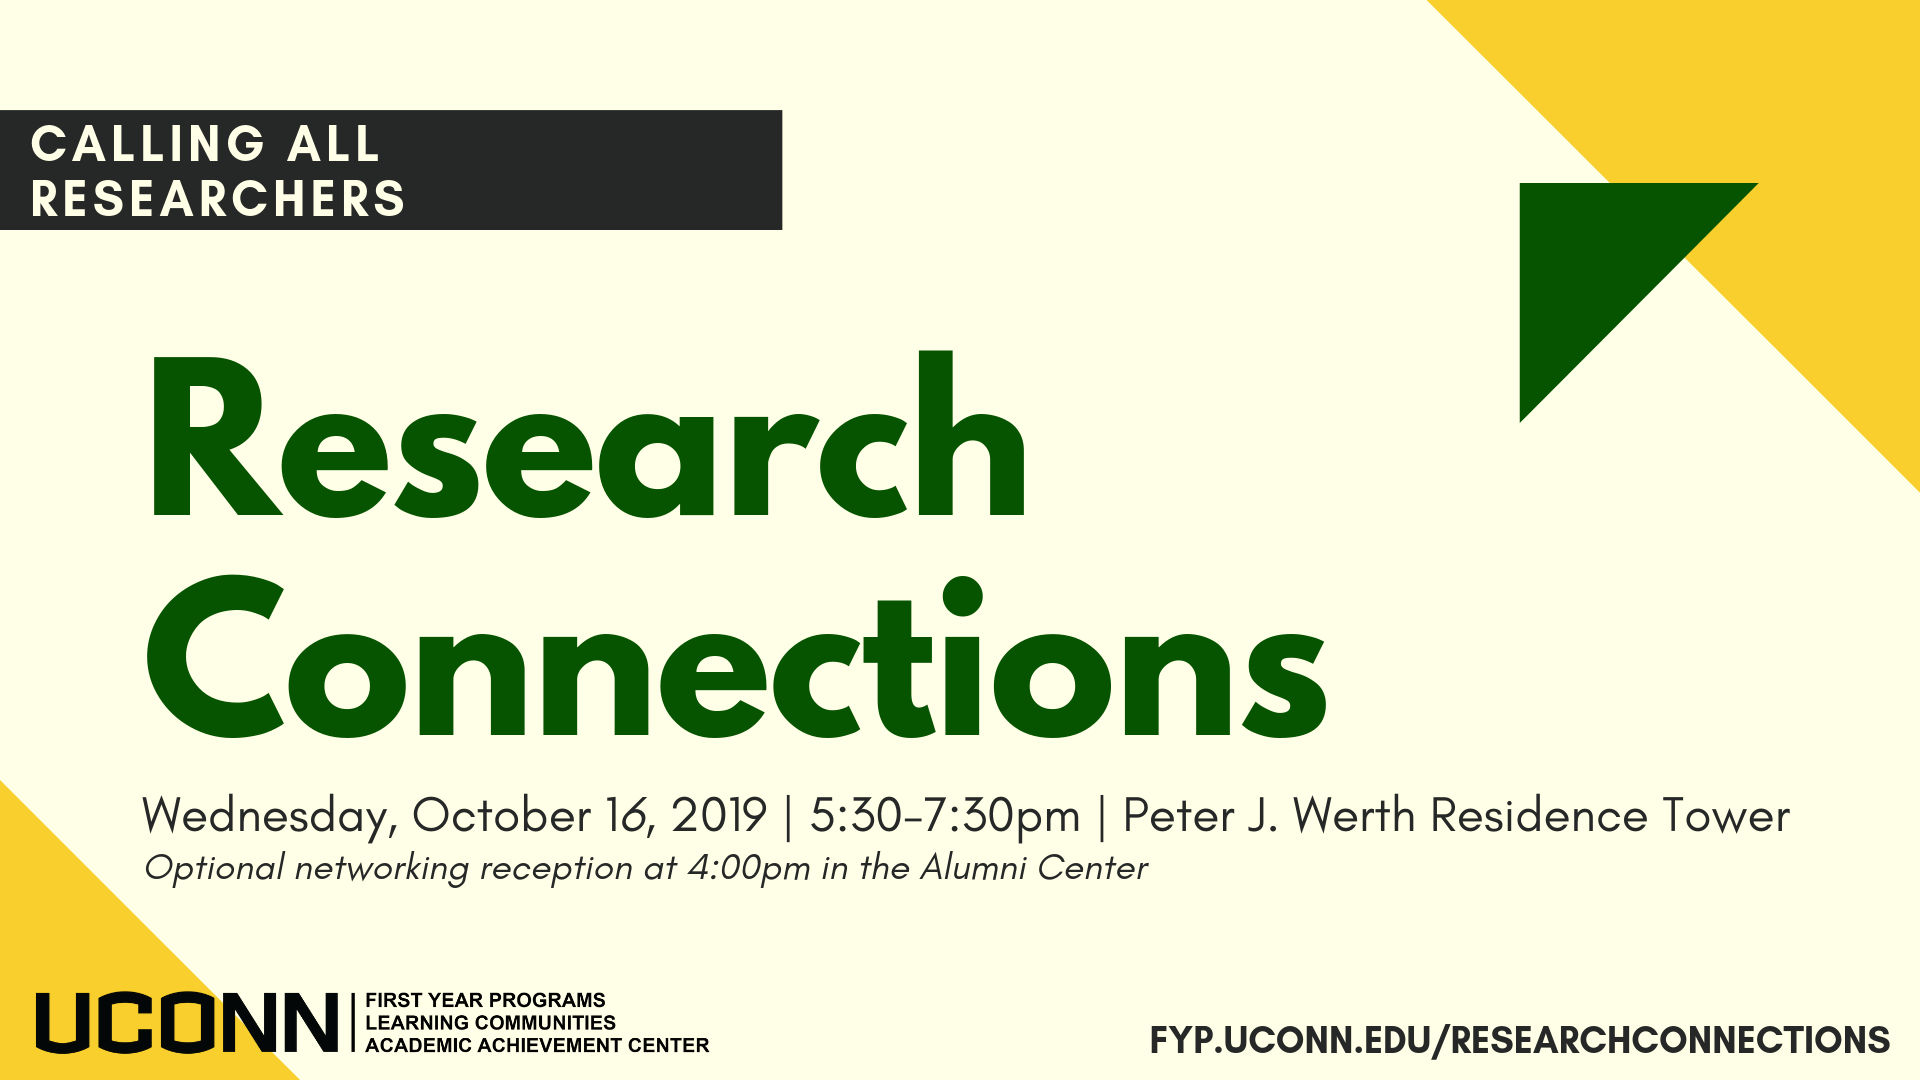 Research Connections 2019 Call for Researchers